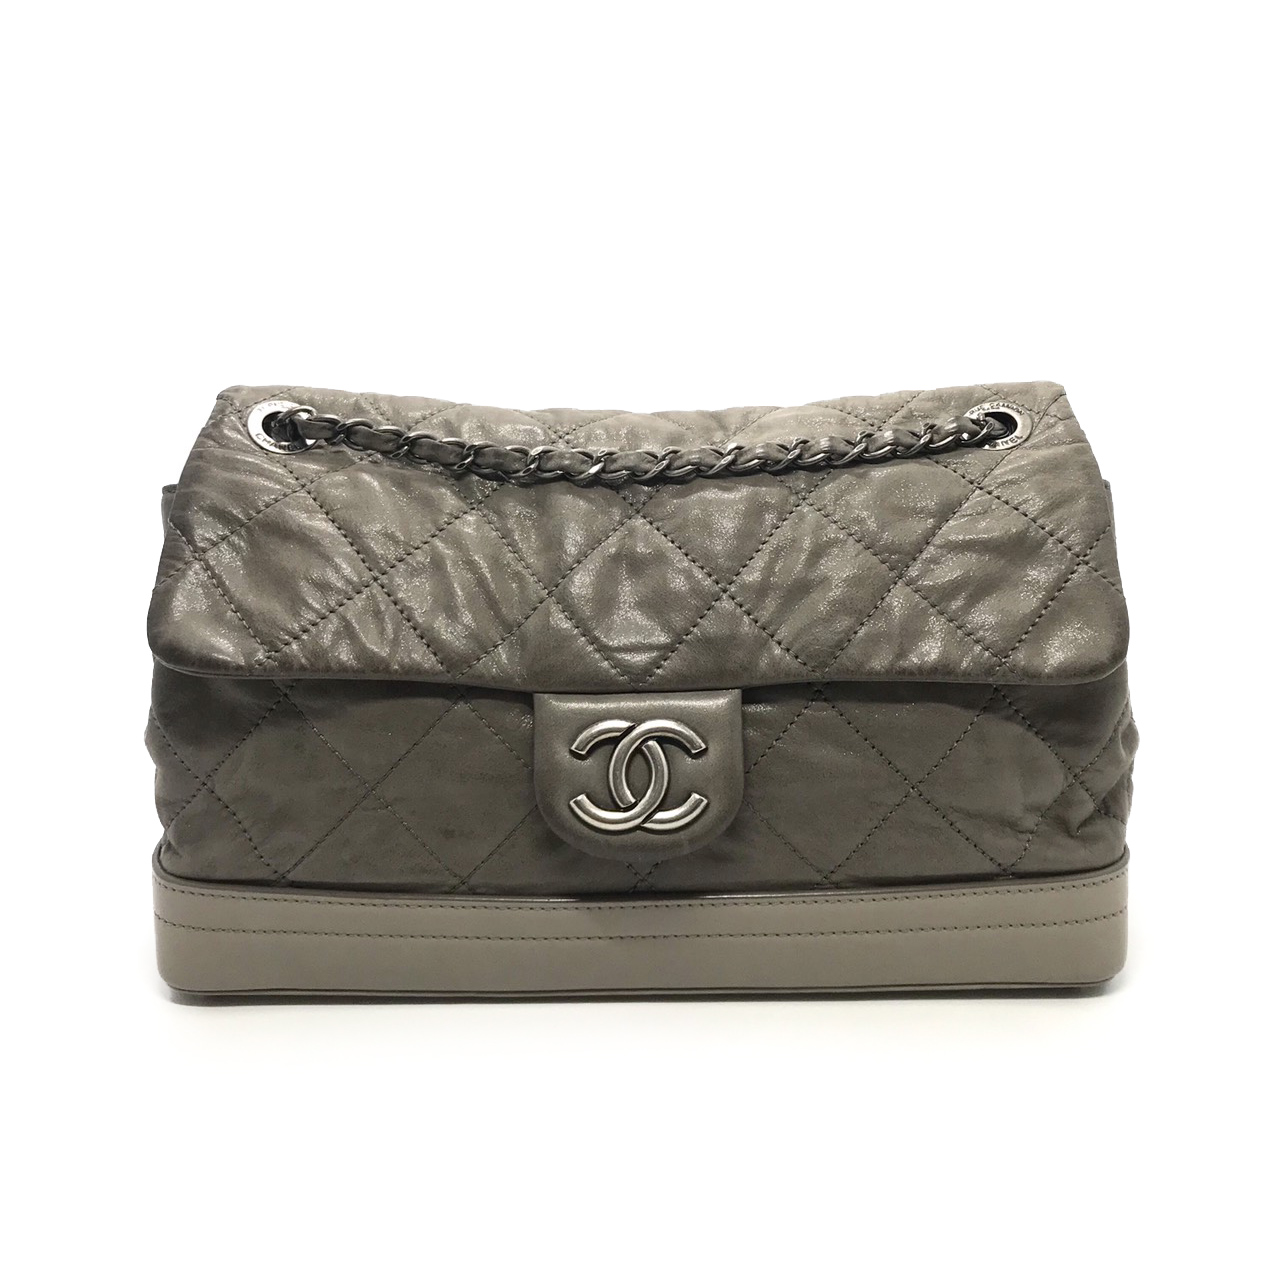 """Used Chanel Flap Bag 11.5"""" in Grey Leather RHW"""